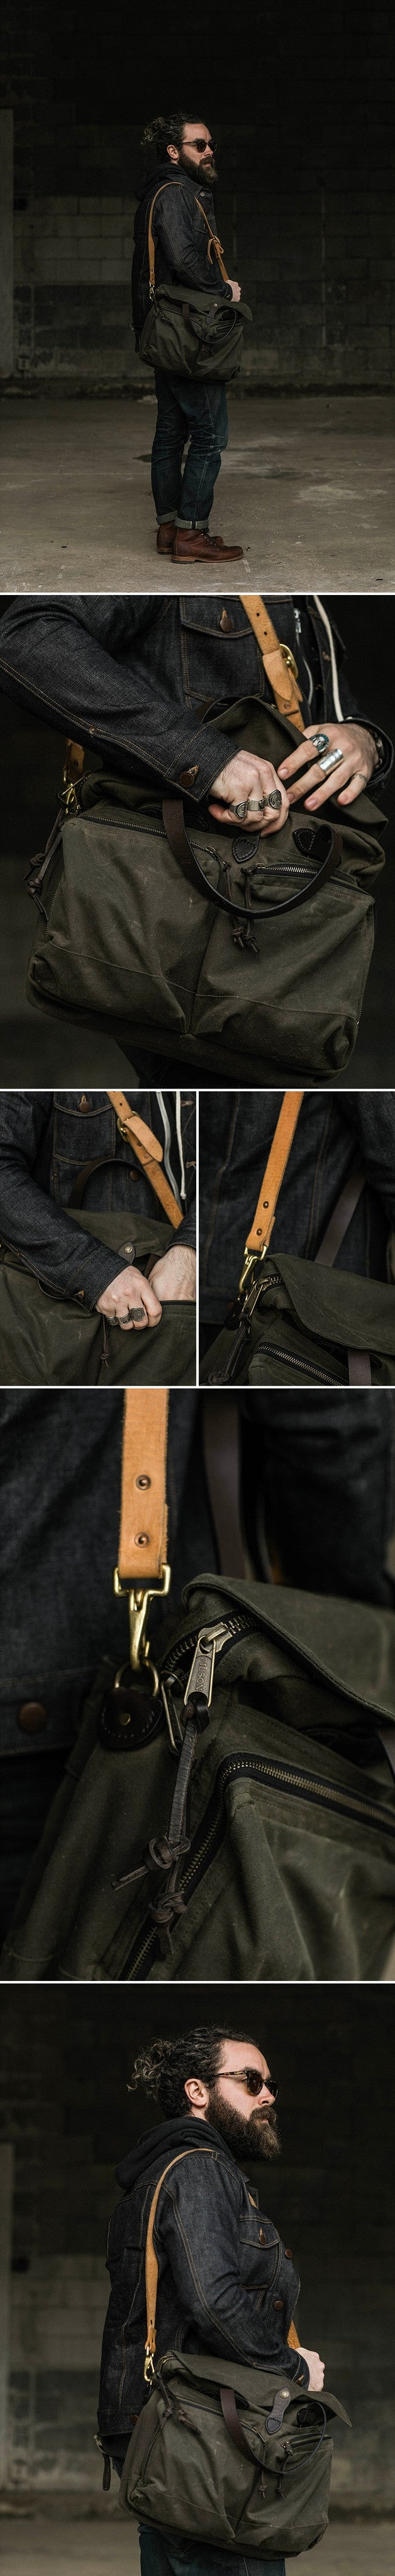 Filson Bags from James Dant a Store for Men